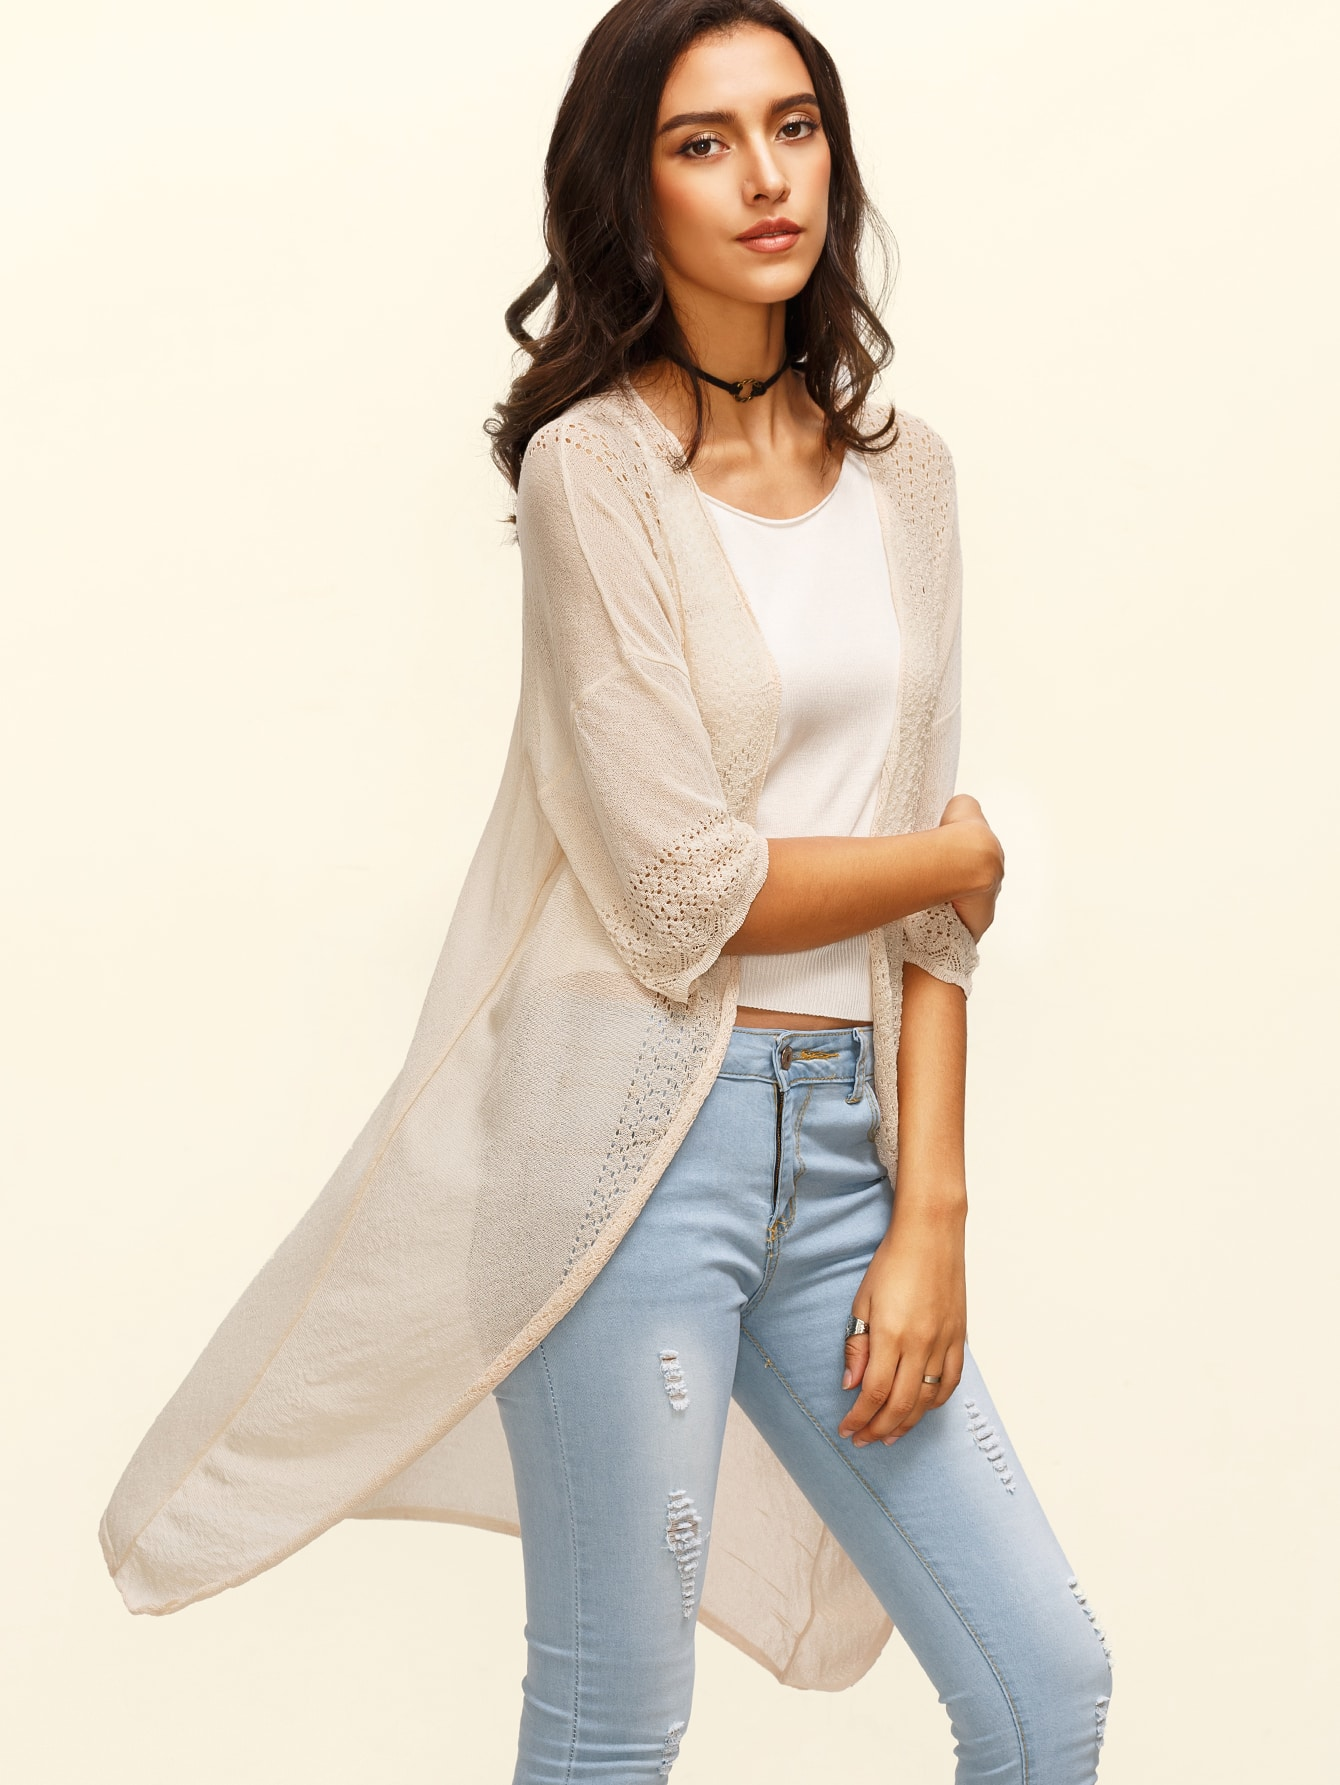 Apricot Three Quarter Sleeve Long CardiganApricot Three Quarter Sleeve Long Cardigan<br><br>color: Apricot<br>size: one-size